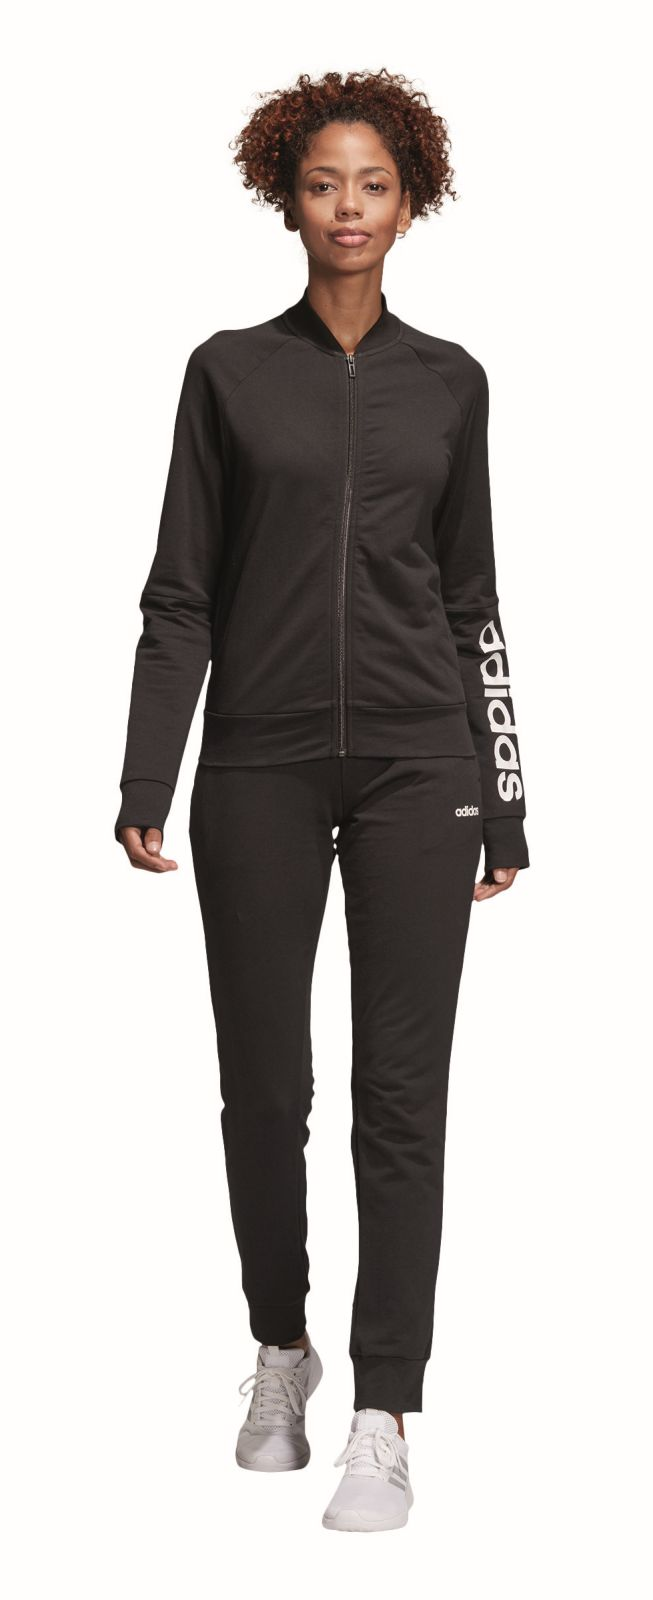 Details about Adidas Performance Womens Tracksuit New Cotton Marker  Tracksuit Black- show original title